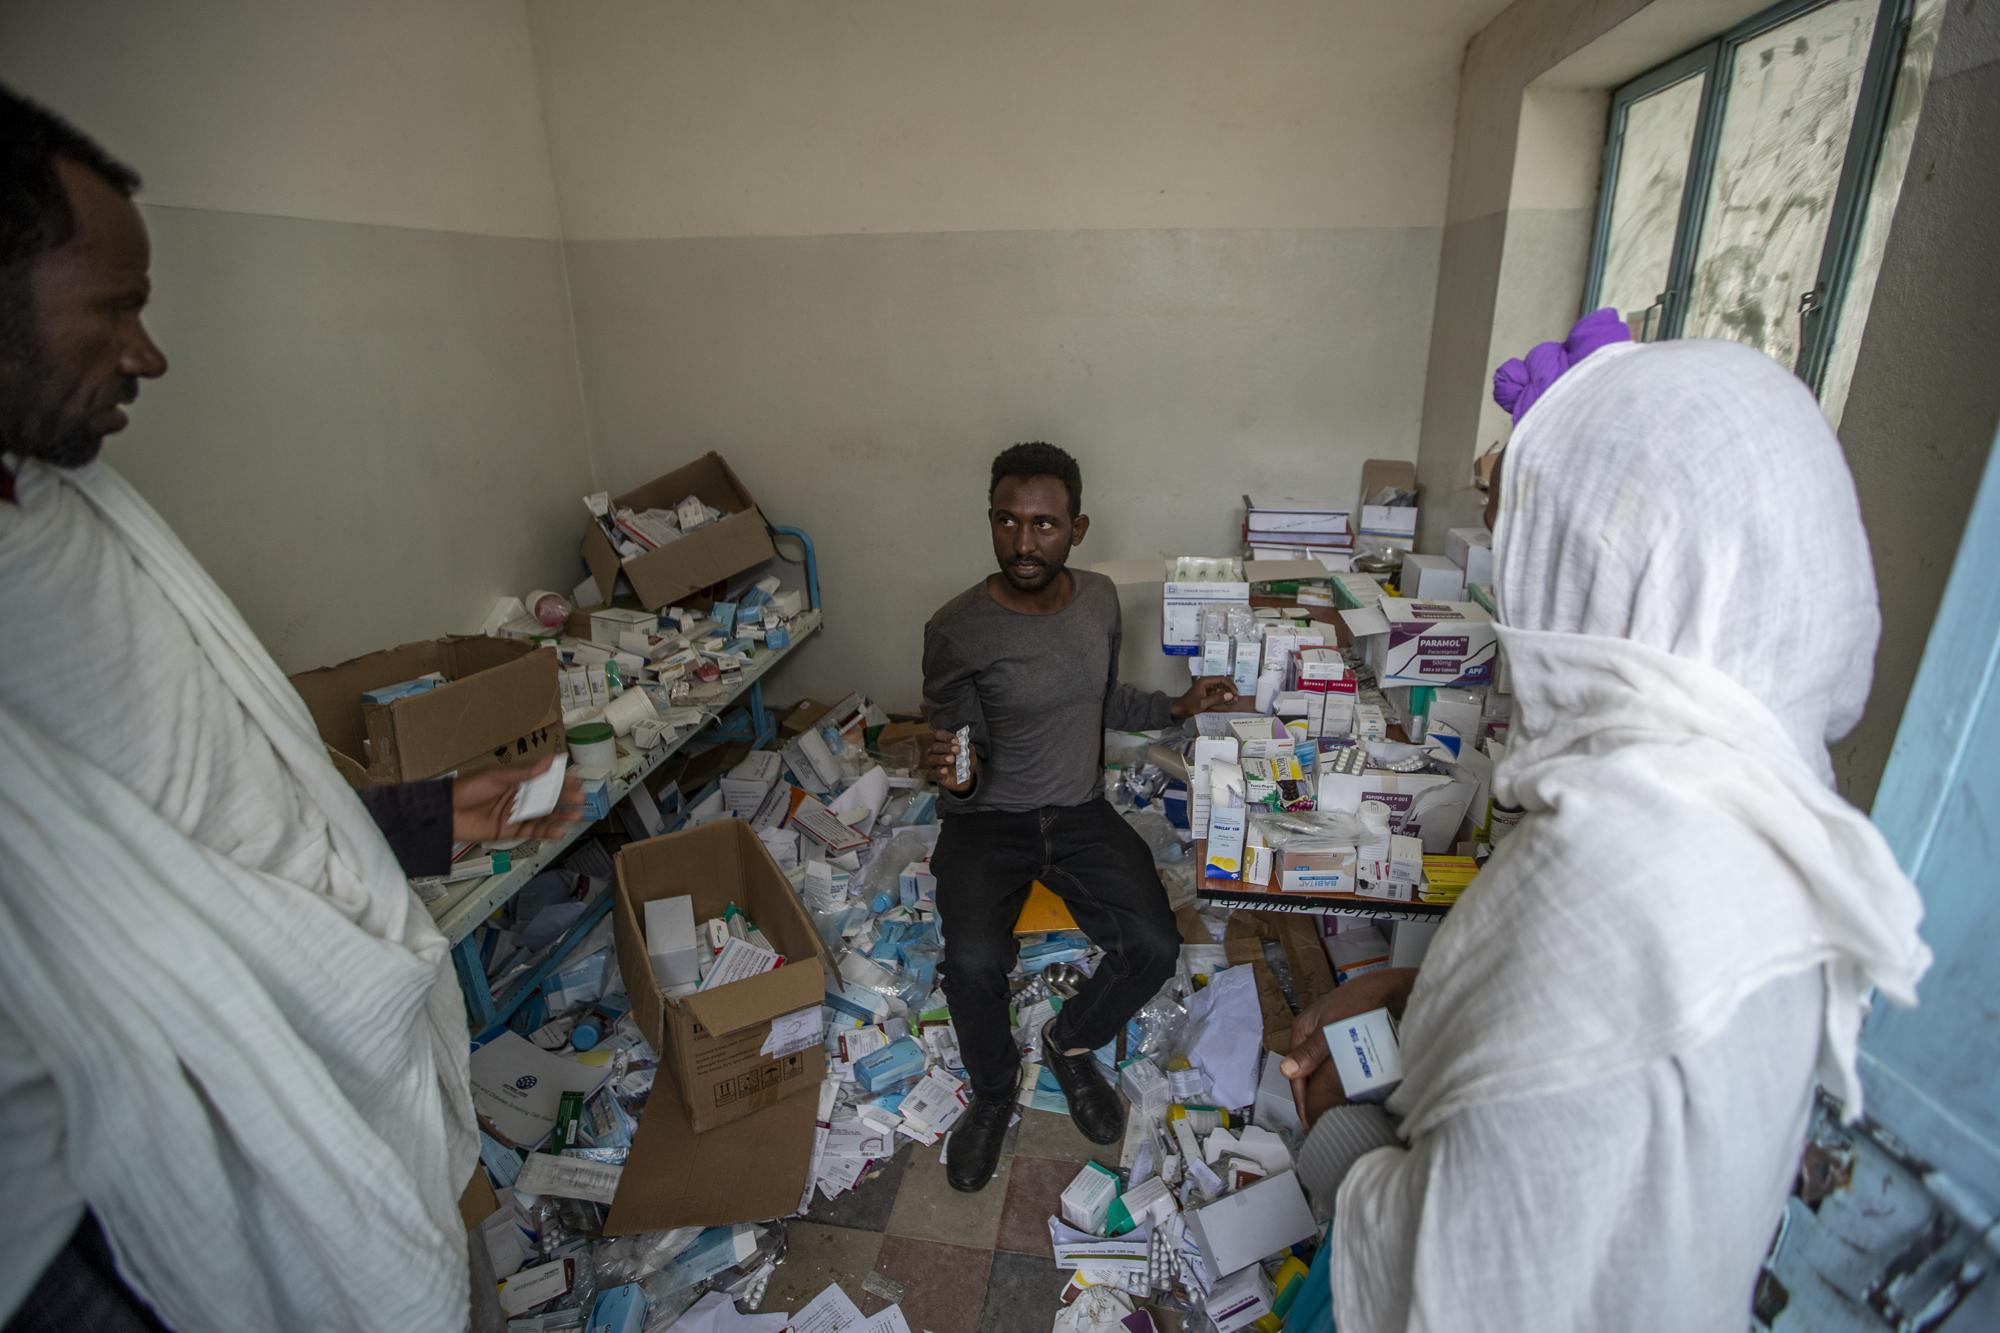 A pharmacist, center, speaks to patients as he sits among the packages of medicine able to be recovered in Hawzen, in the Tigray region of northern Ethiopia, on Friday, May 7, 2021. The hospital was damaged and looted by Eritrean soldiers who used it as a base, according to witnesses. (AP Photo/Ben Curtis)